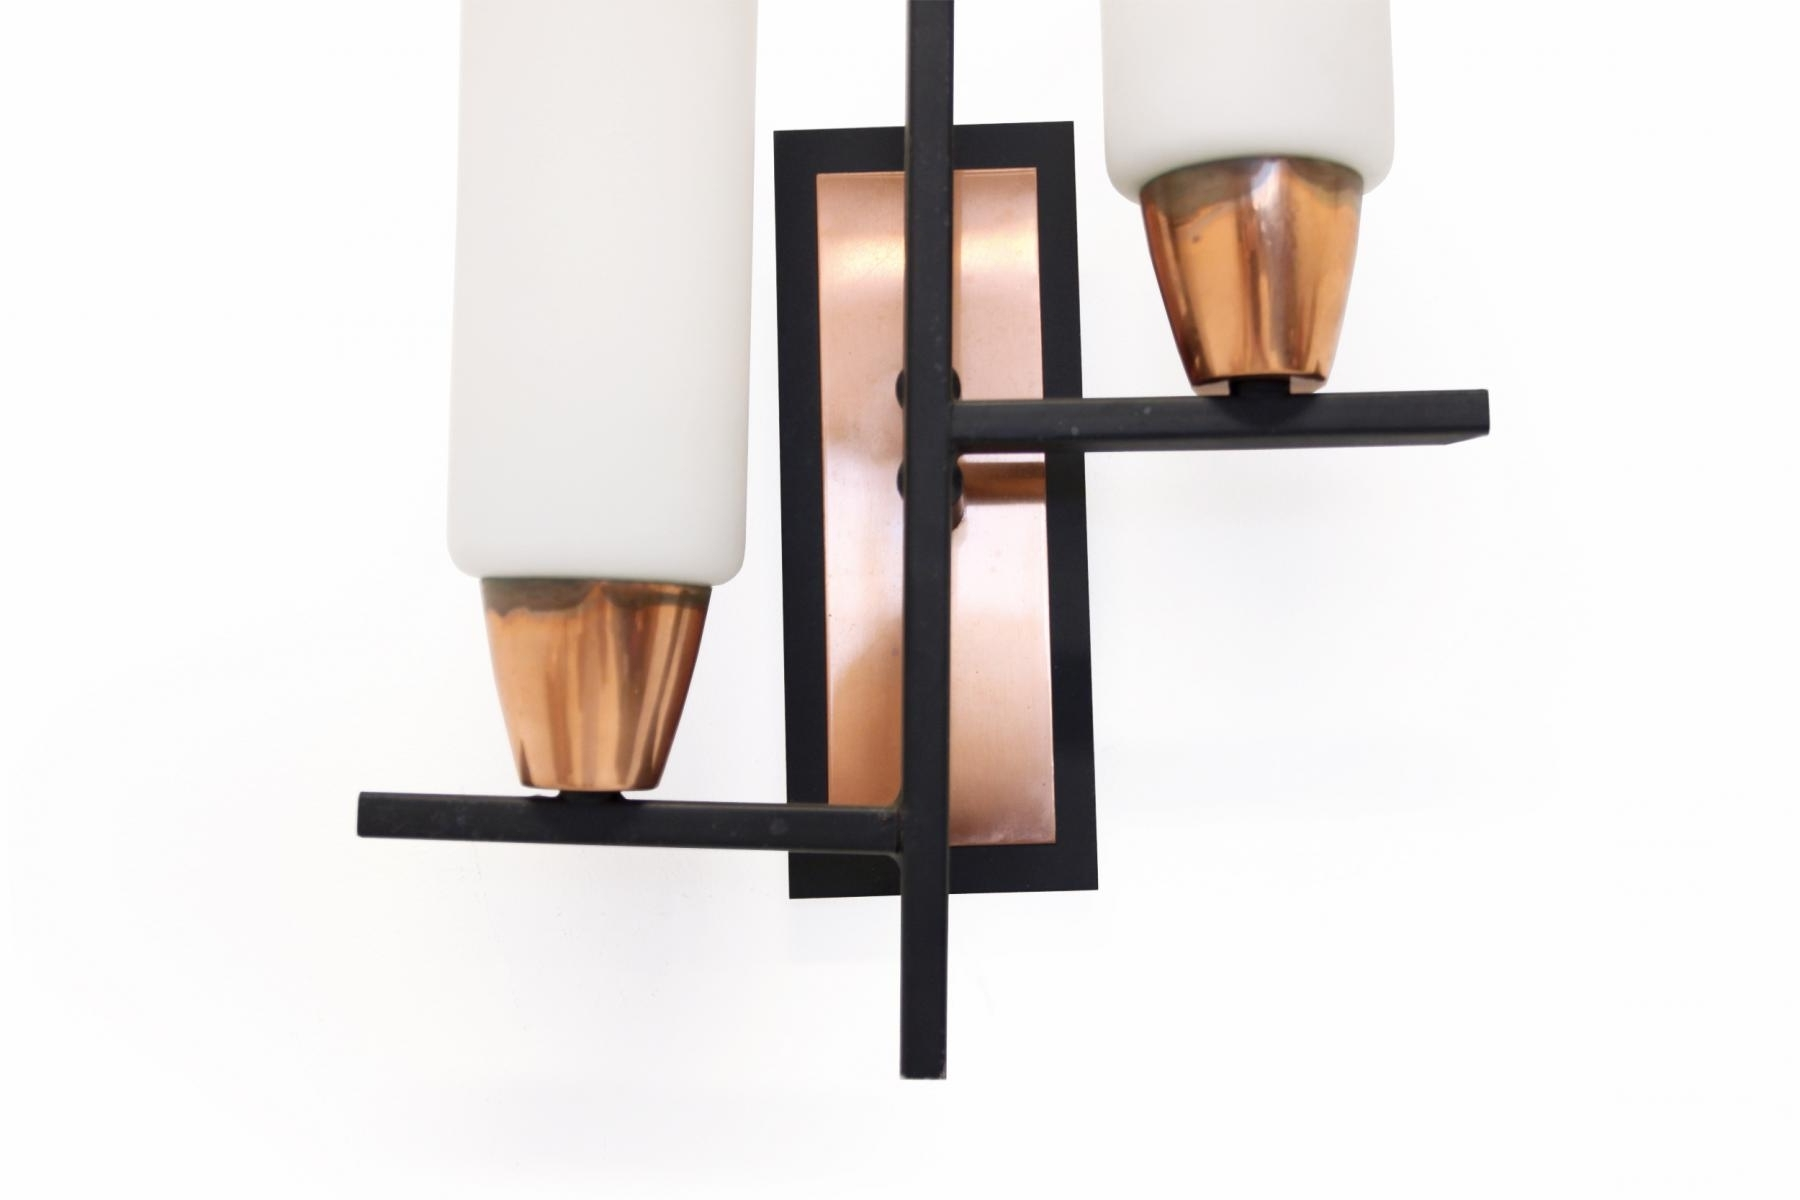 Scandinavian Wall Lights From Pcb, 1960S, Set Of 3 For Sale At Pamono Within Most Up To Date Scandinavian Chandeliers (View 17 of 20)